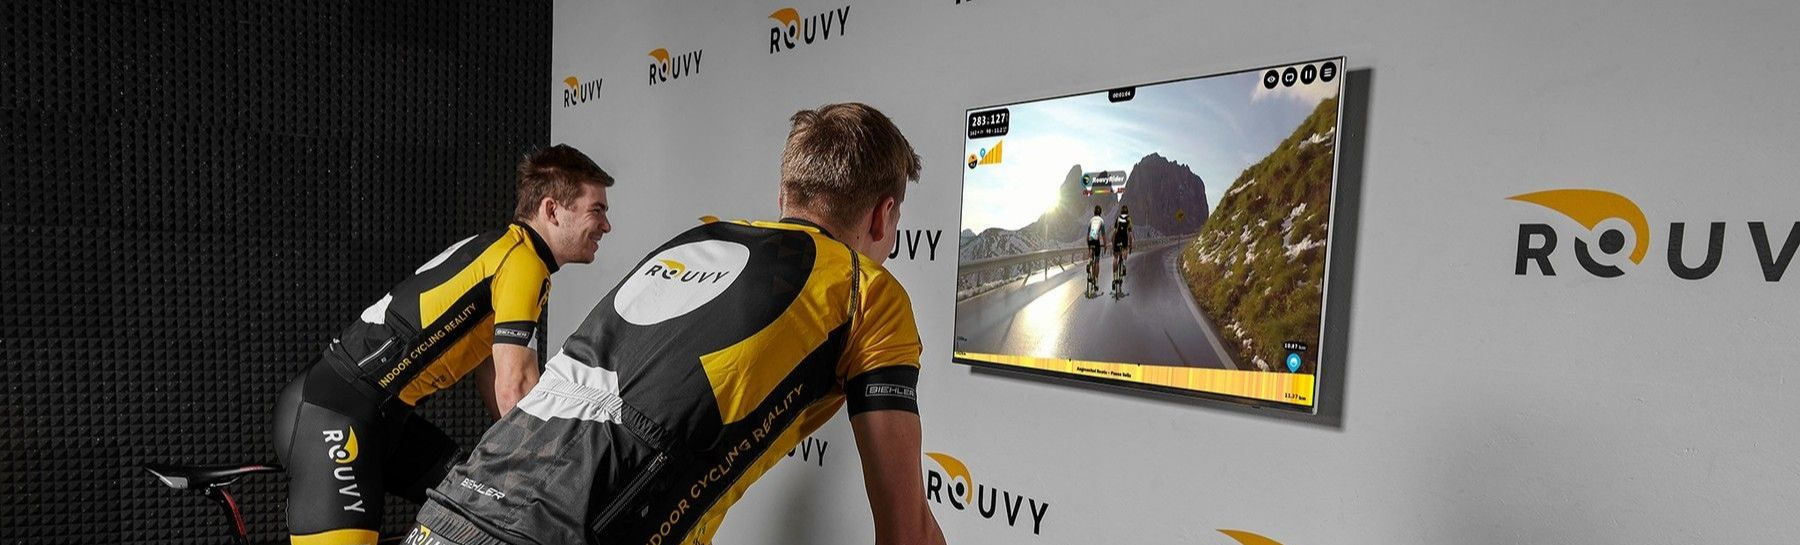 Pale Fire Capital invests $6 million in ROUVY,  the popular augmented reality app for indoor training